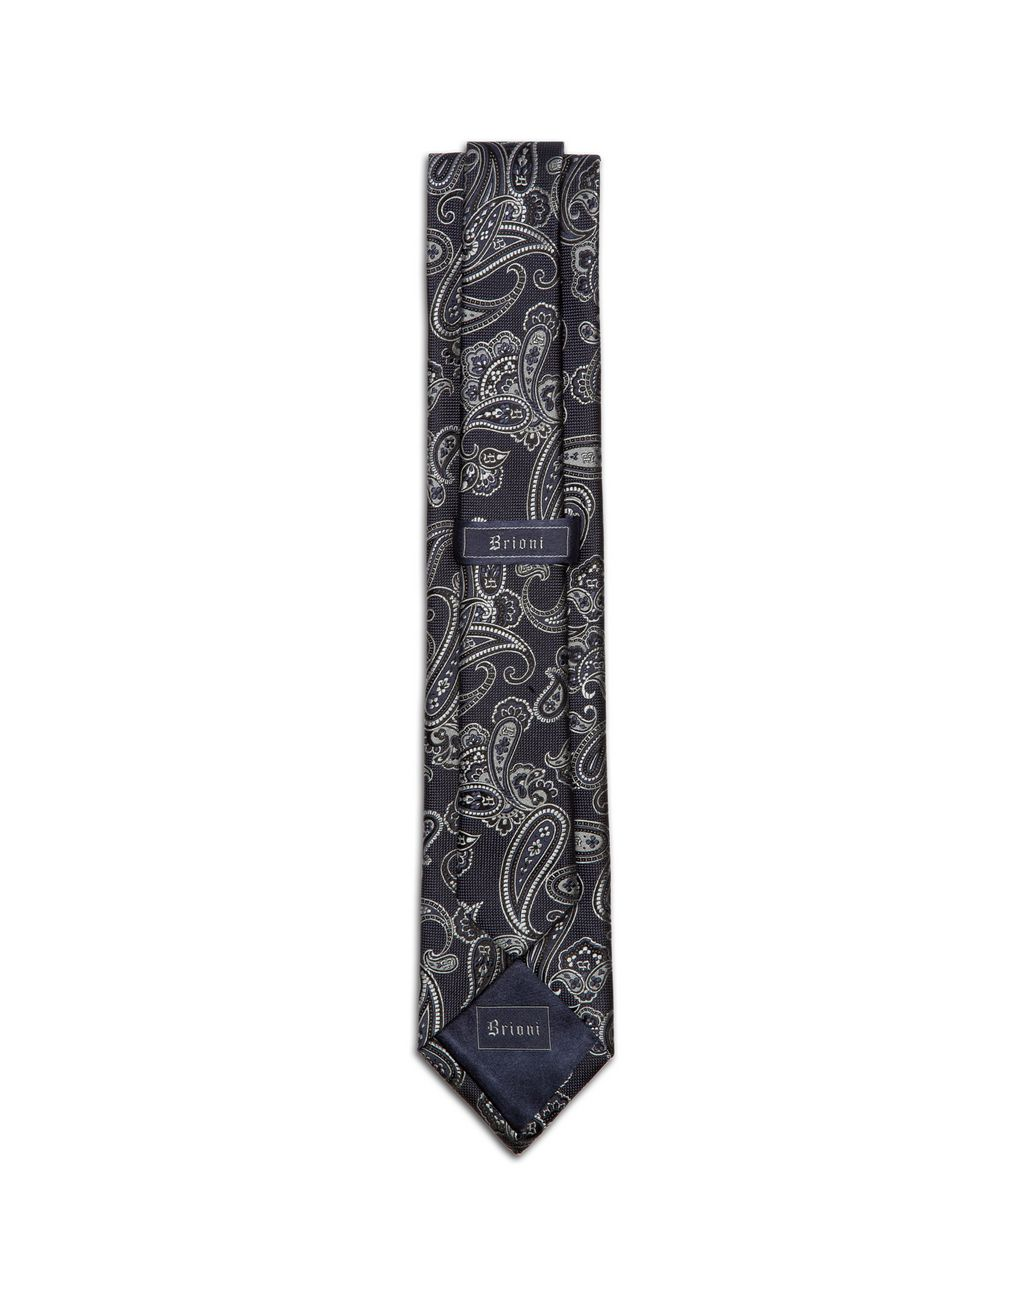 BRIONI Grey and Indigo Paisley Tie Tie & Pocket Square U r